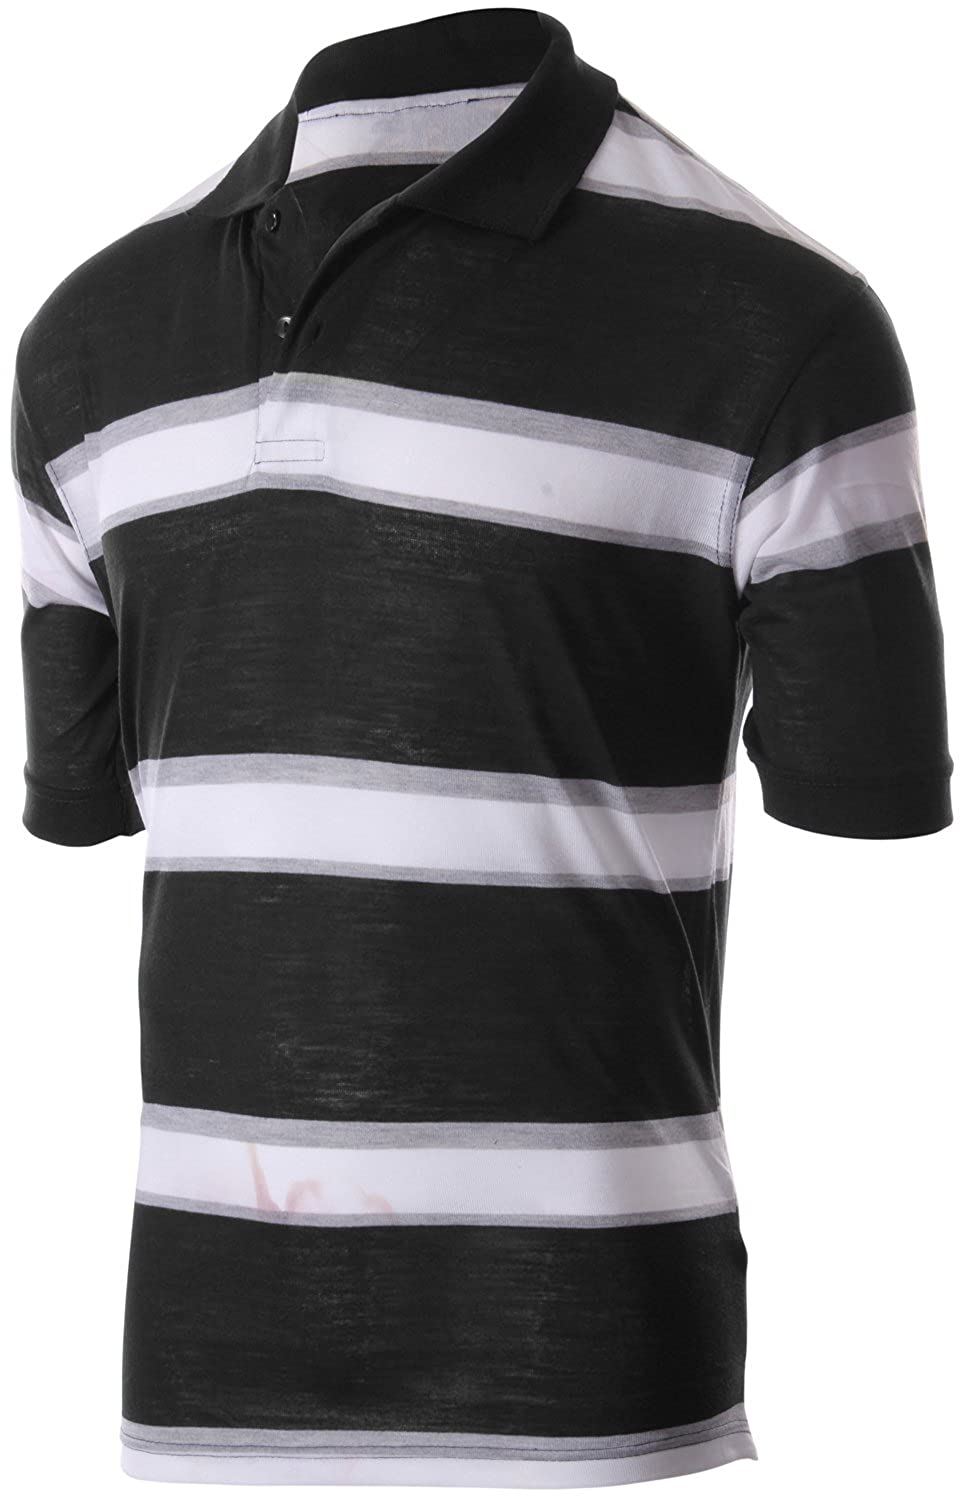 98d1e78d081e8 This versatile polo can be dressed up or down and look awesome for any  occasion!